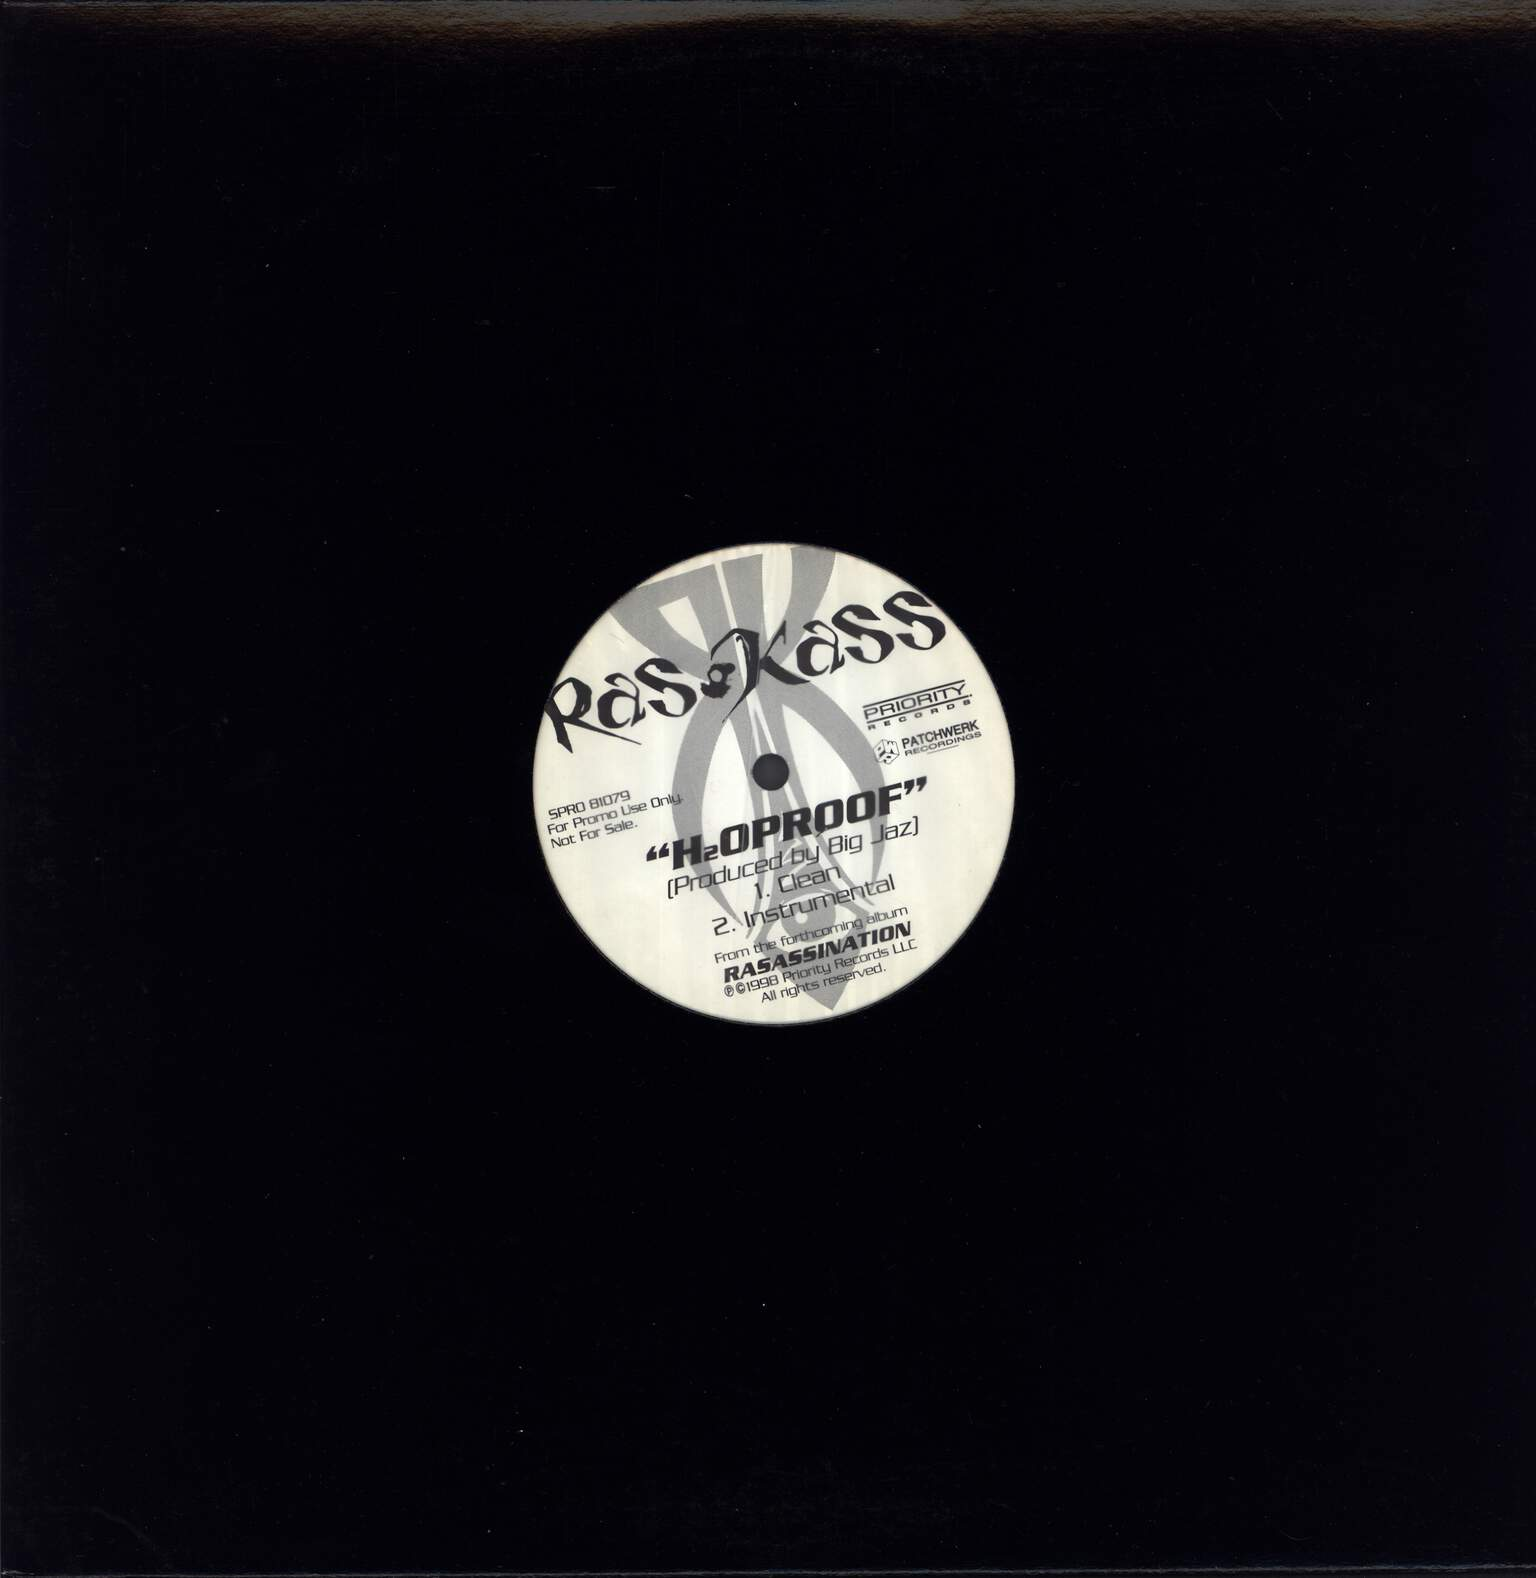 "Ras Kass: H2O Proof, 12"" Maxi Single (Vinyl)"